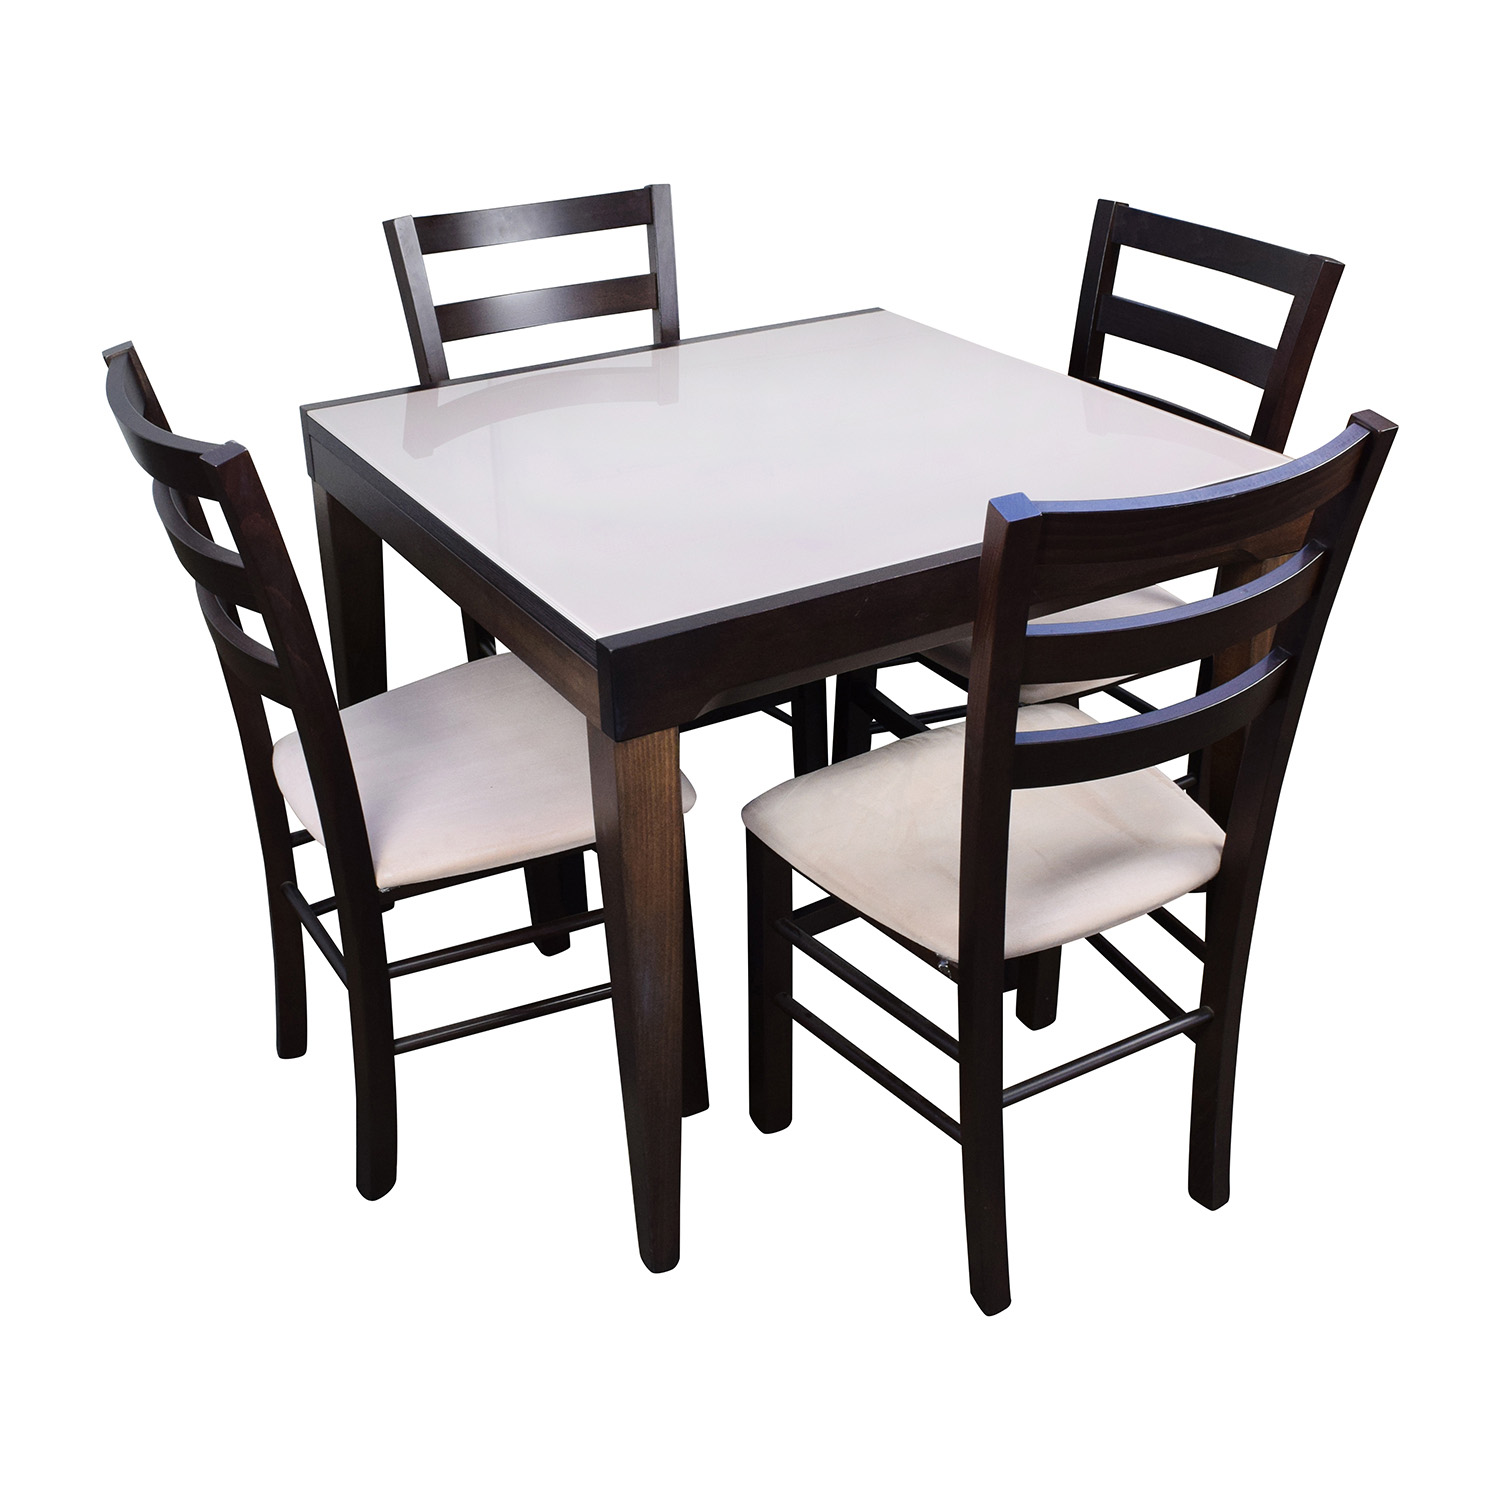 OFF Macy s Macy s Cafe Latte Five Piece Extendable Dining Set